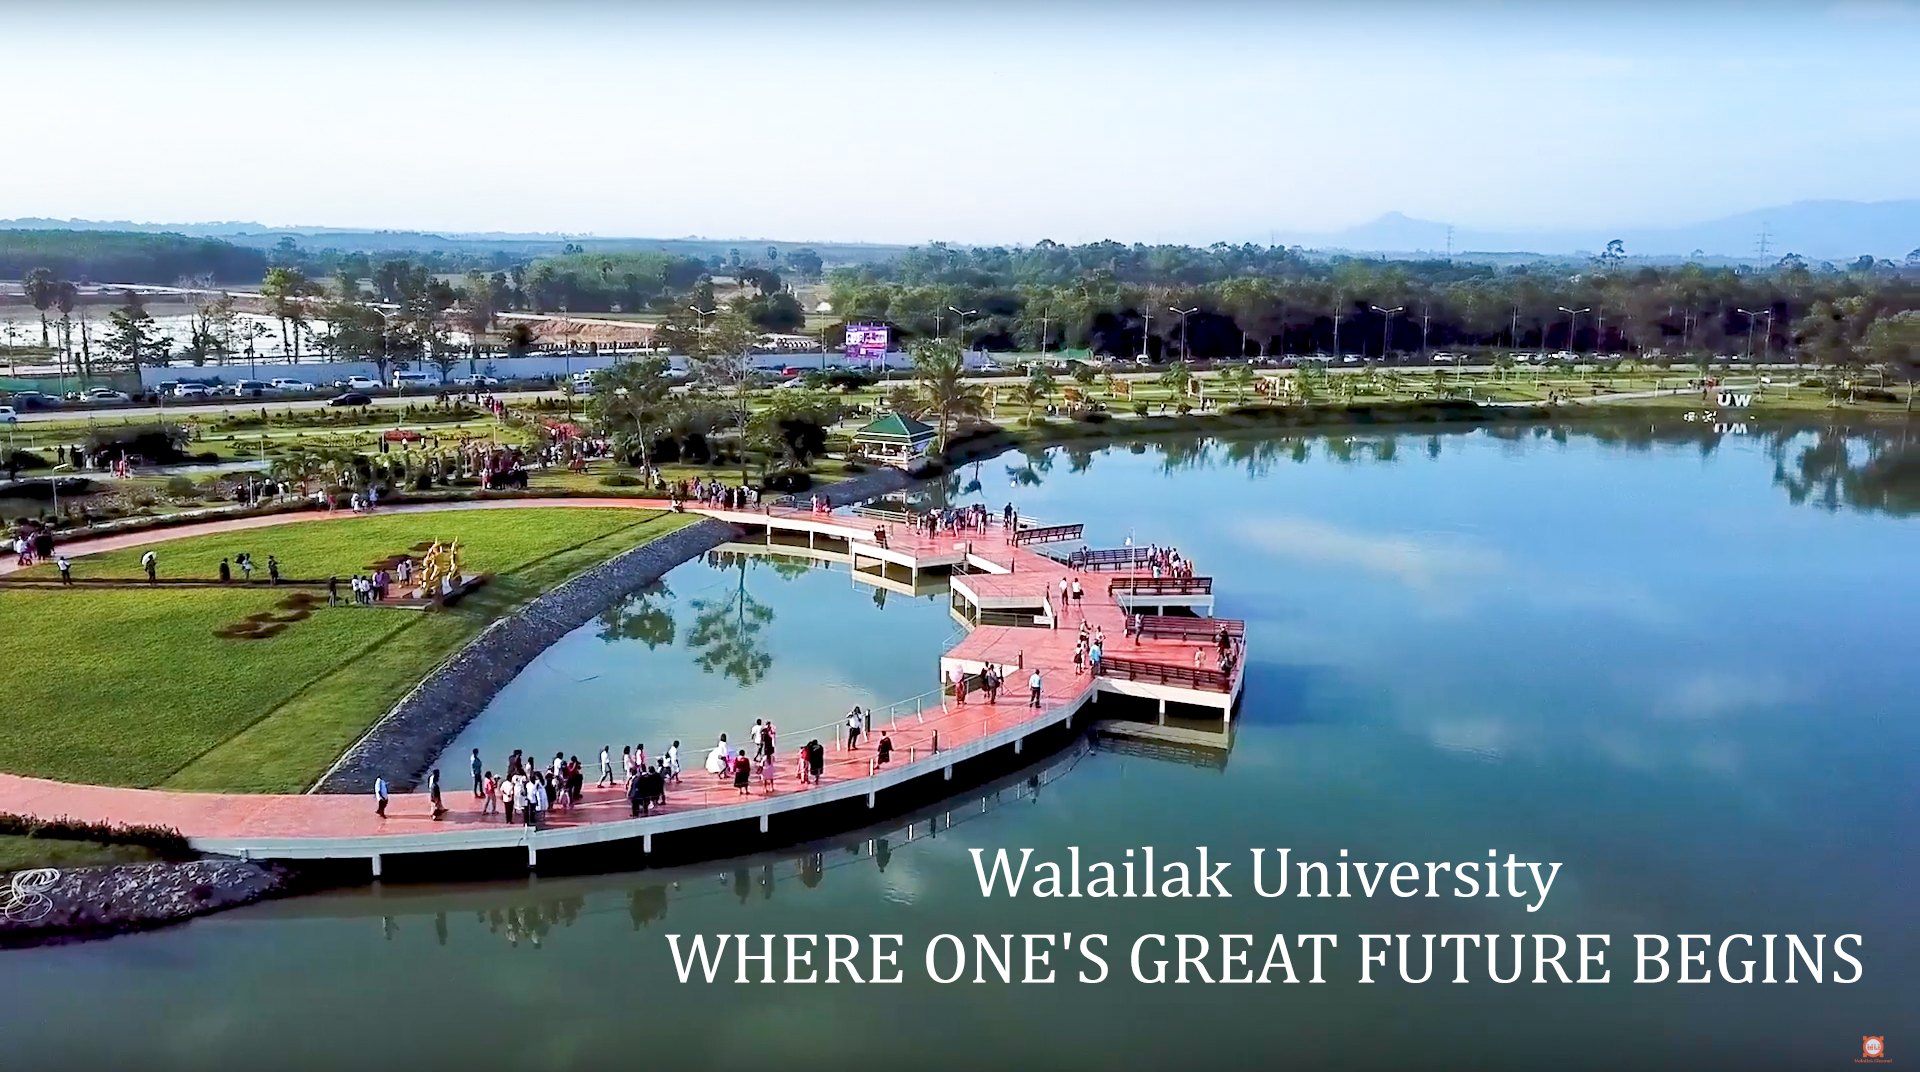 Walailak University  WHERE ONE'S GREAT FUTURE BEGINS